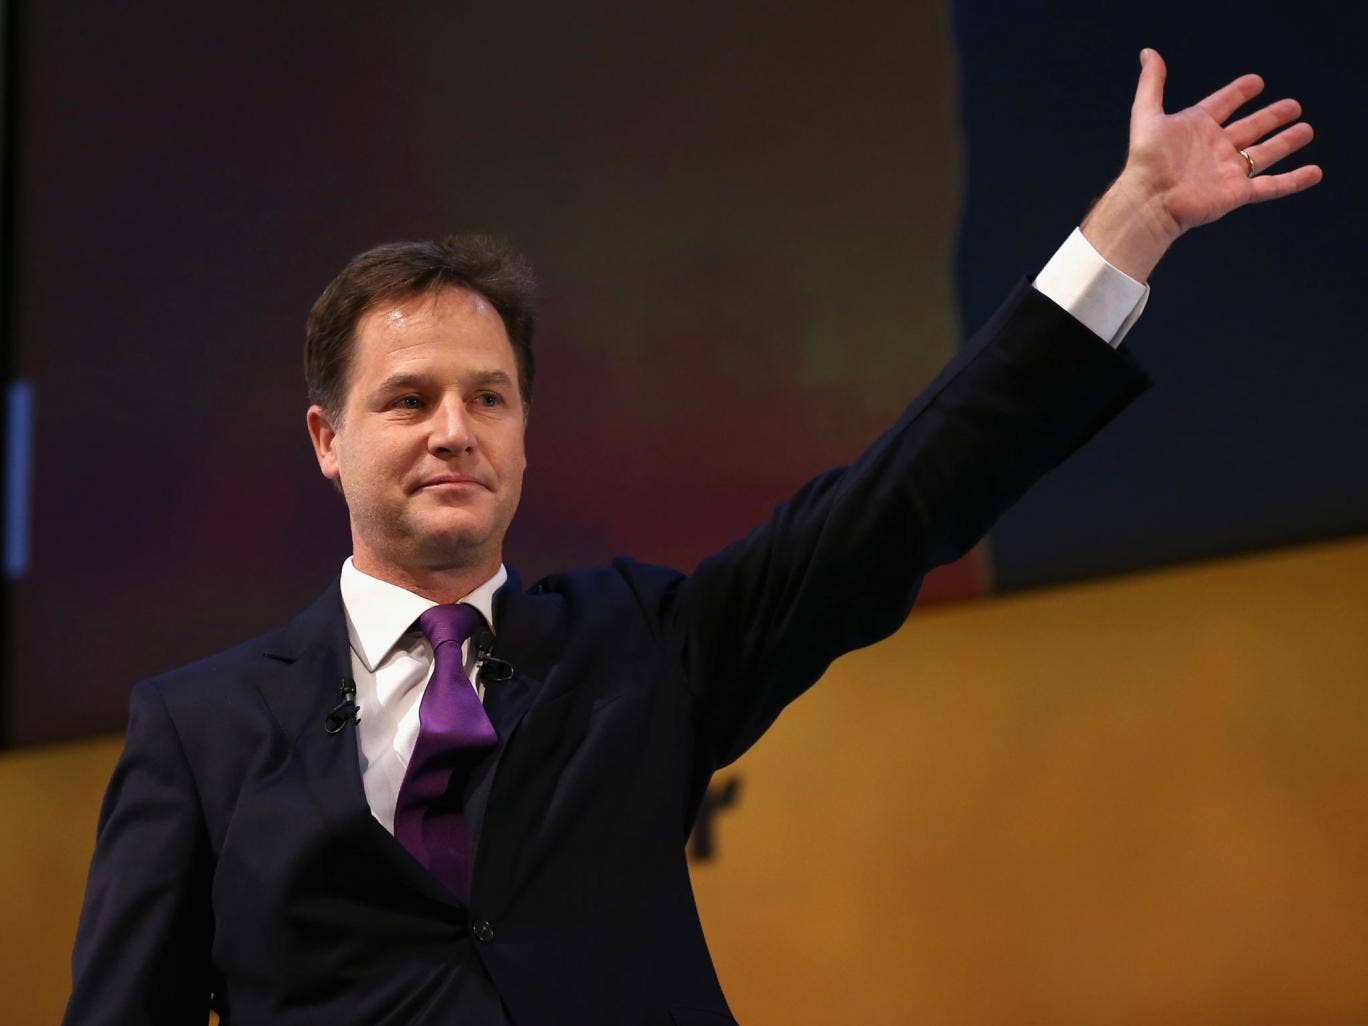 Nick Clegg said the Liberal Democrats remain committed to balancing the nation's books